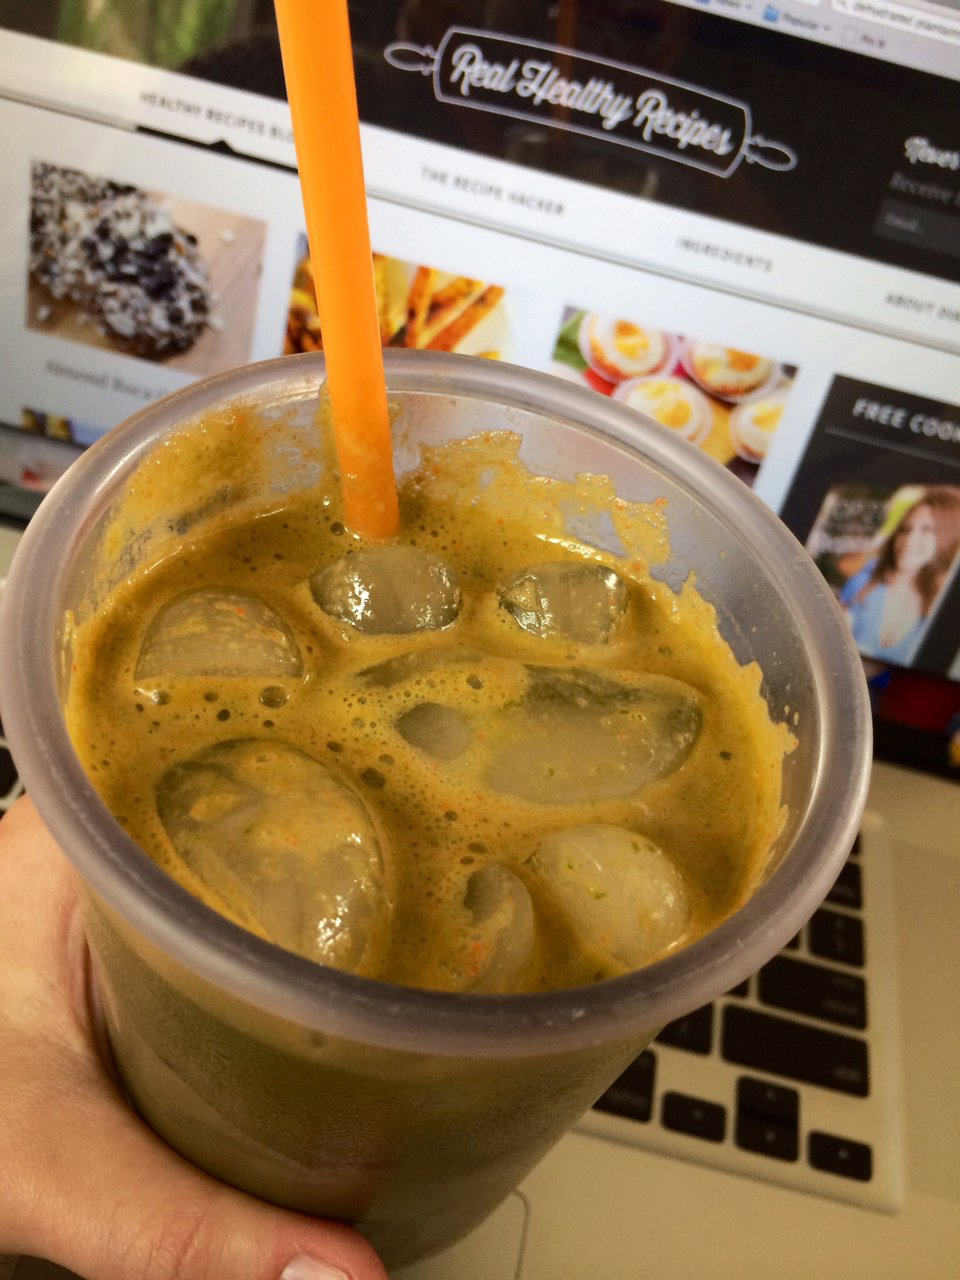 Work Day Green Juice